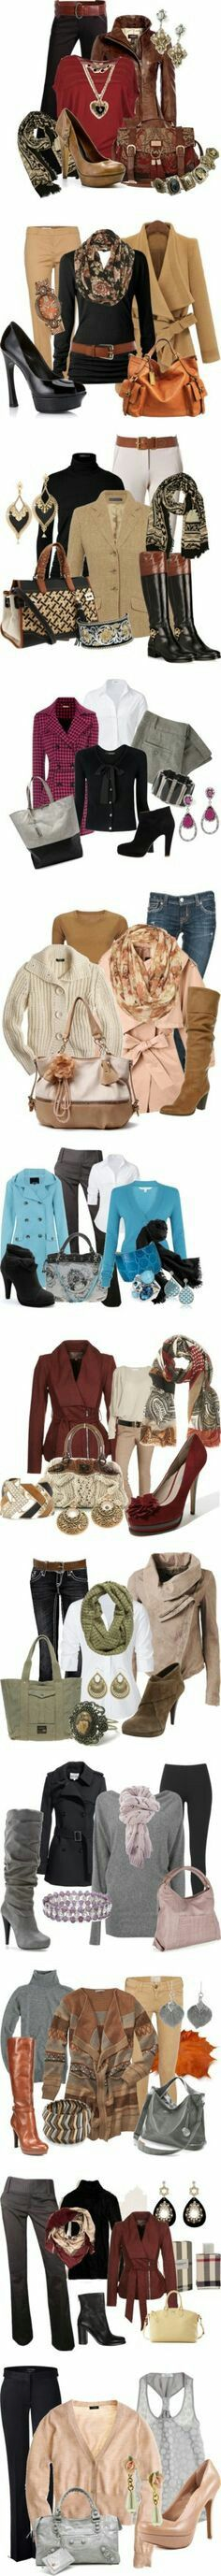 """Work Wear Pants/Jeans"" almost every one is cute! Mode Outfits, Casual Outfits, Fashion Outfits, Womens Fashion, Classy Outfits, Fall Winter Outfits, Autumn Winter Fashion, Autumn Style, Fall Fashion"